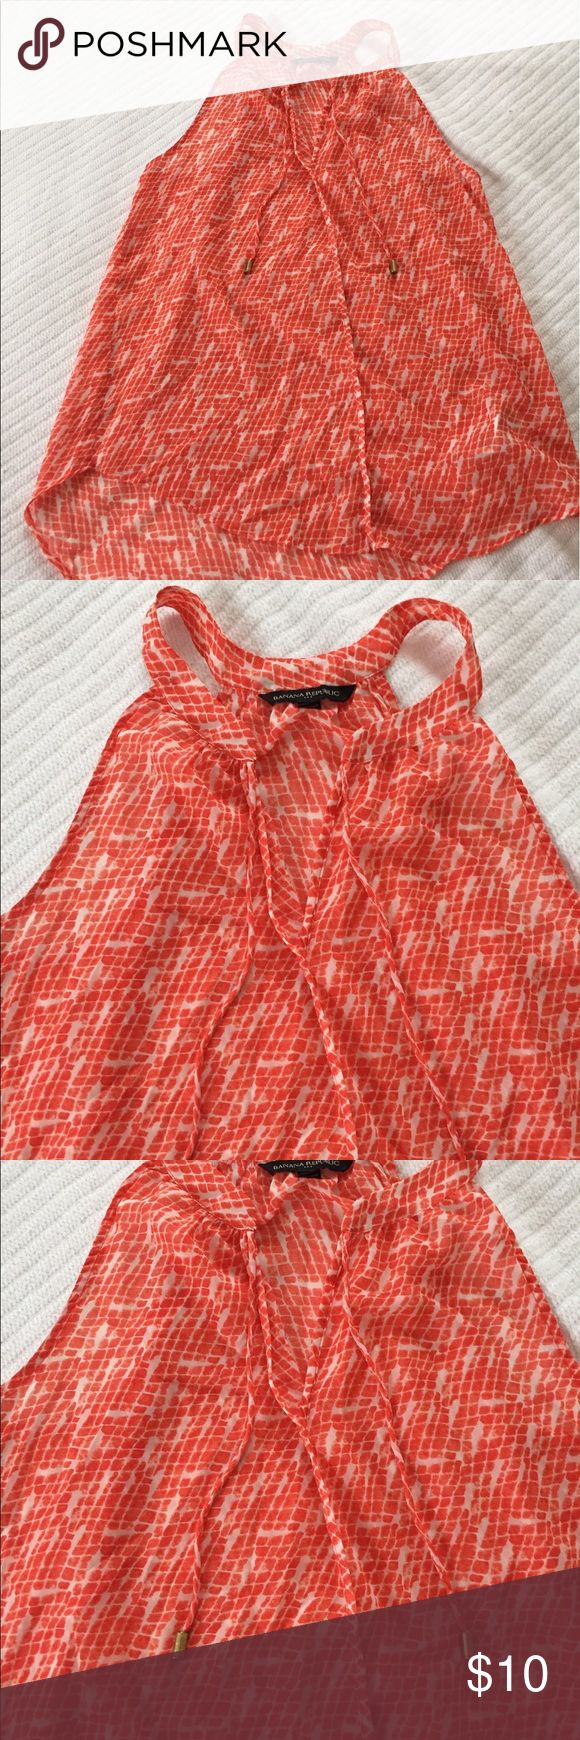 Small Banana Republic Top Orange and White 100% polyester, good condition sleeveless top with detail at neck. Banana Republic Tops